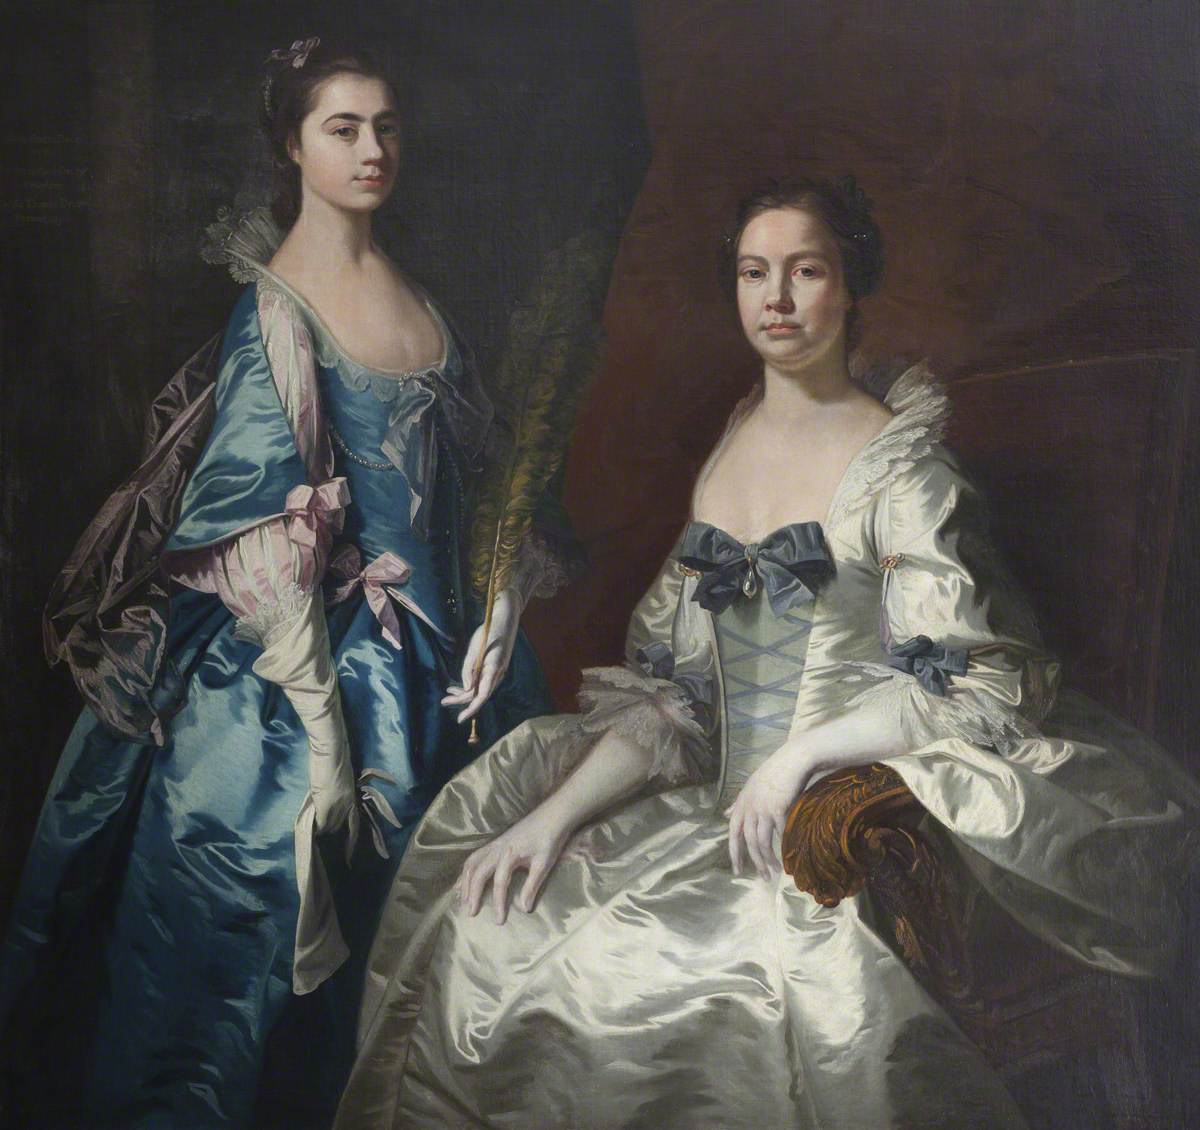 Martha Tyrrell (d.1768), Lady Drury, and Her Daughter, Mary Ann Drury (1740–1769), Later Countess of Buckingham